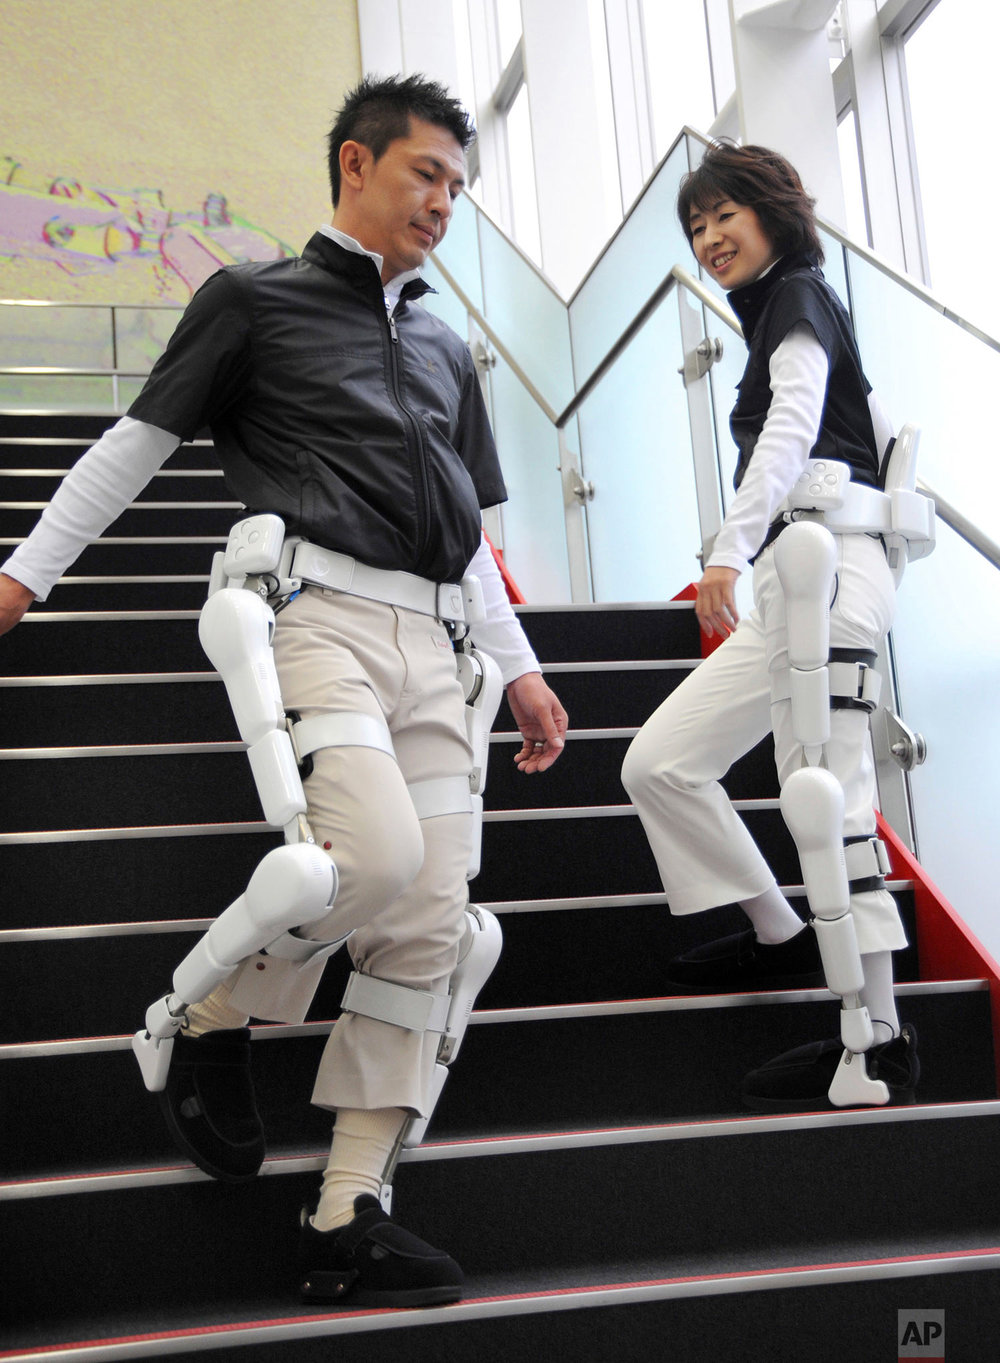 In this Tuesday, Oct. 7, 2008 photo, robotic suits named HAL (Hybrid Assistive Limb) are demonstrated during a news conference at the headquarters of Cyberdyne, a new company in Tsukuba, outside Tokyo. HAL, which reads brain signals and helps people with mobility problems, will be available to rent in Japan for US$2,200 for both legs and $1,500 for a one leg a month and may have far-reaching benefits for the disabled and elderly. (AP Photo/Katsumi Kasahara)